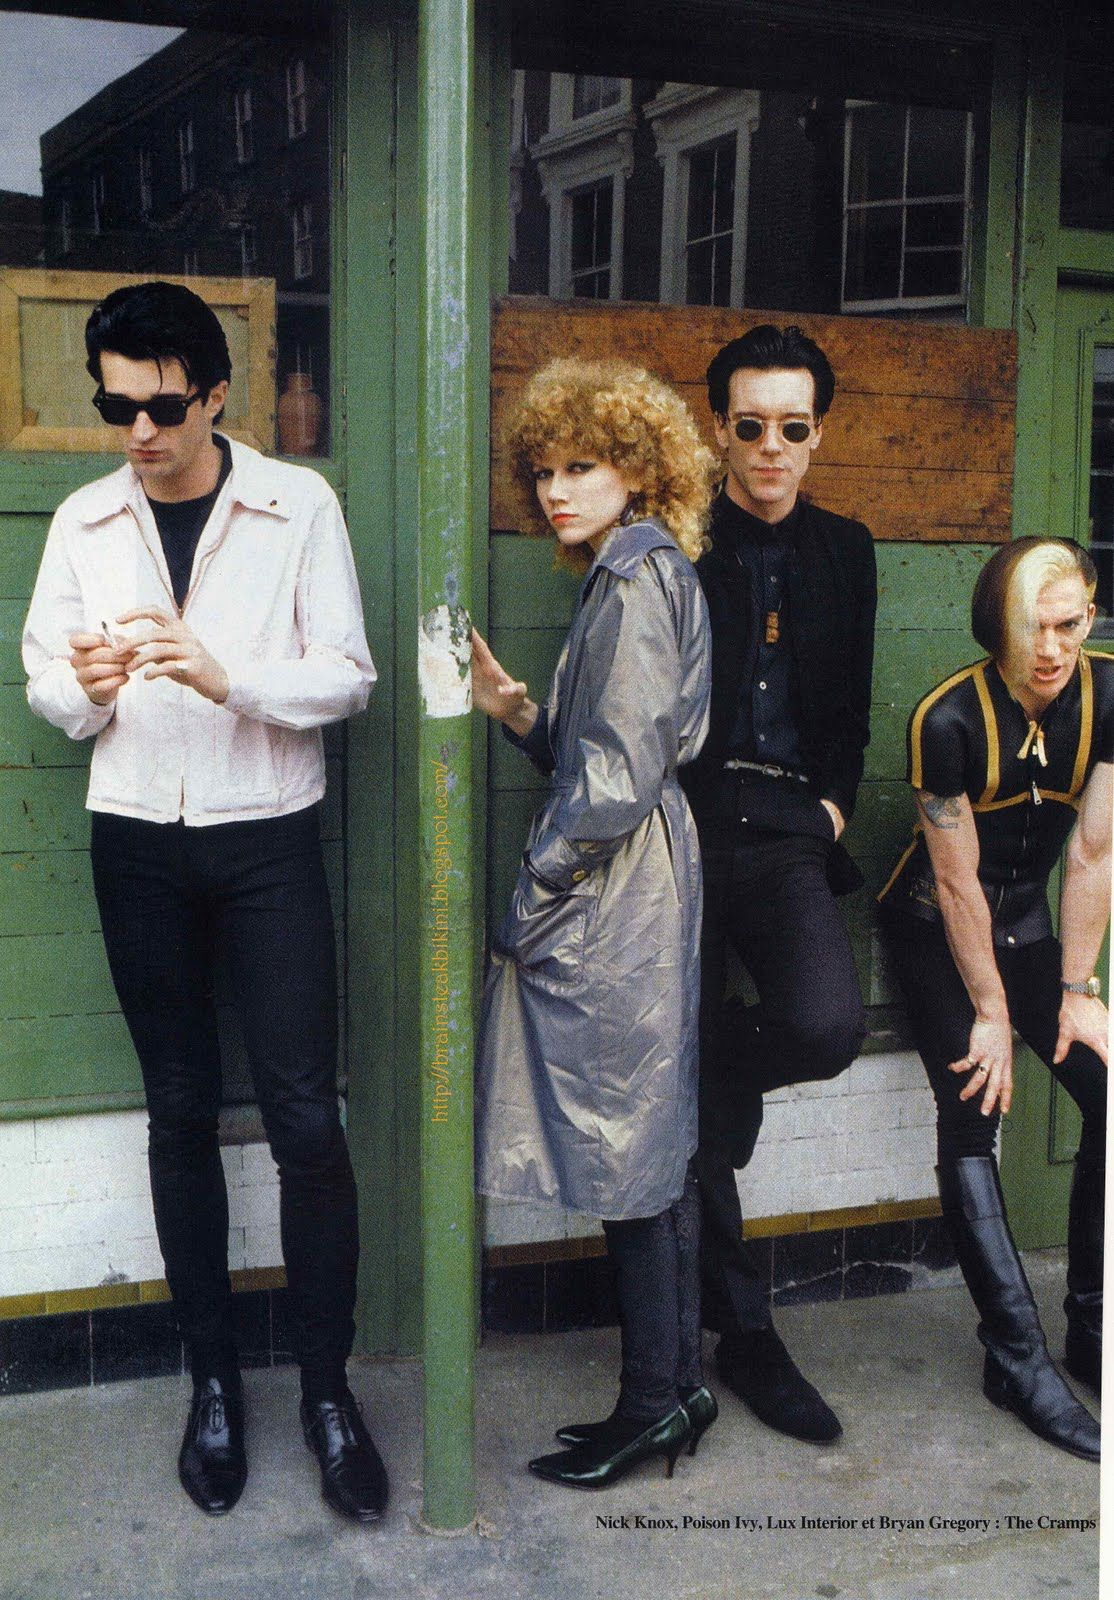 Bilderesultat for cramps songs the lord taught us vinyl   The Cramps